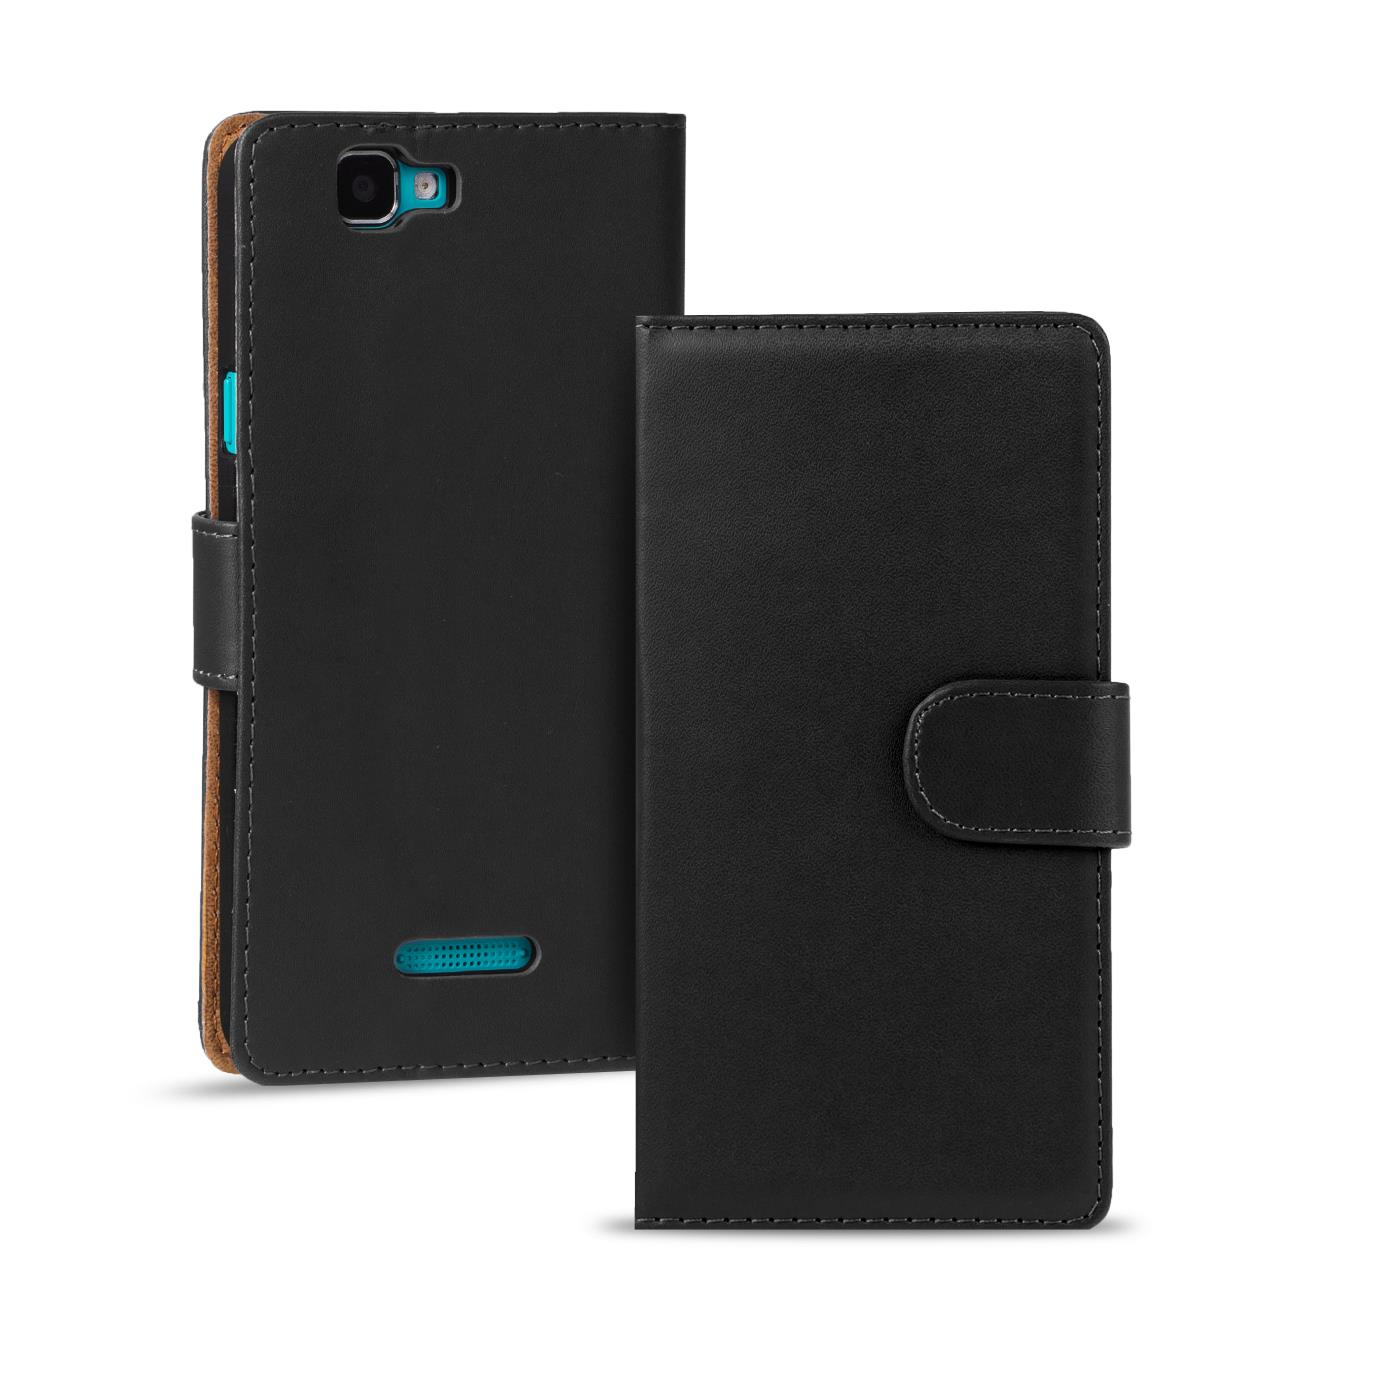 handy tasche f r wiko smartphone flip cover case schutz h lle etui schale wallet ebay. Black Bedroom Furniture Sets. Home Design Ideas